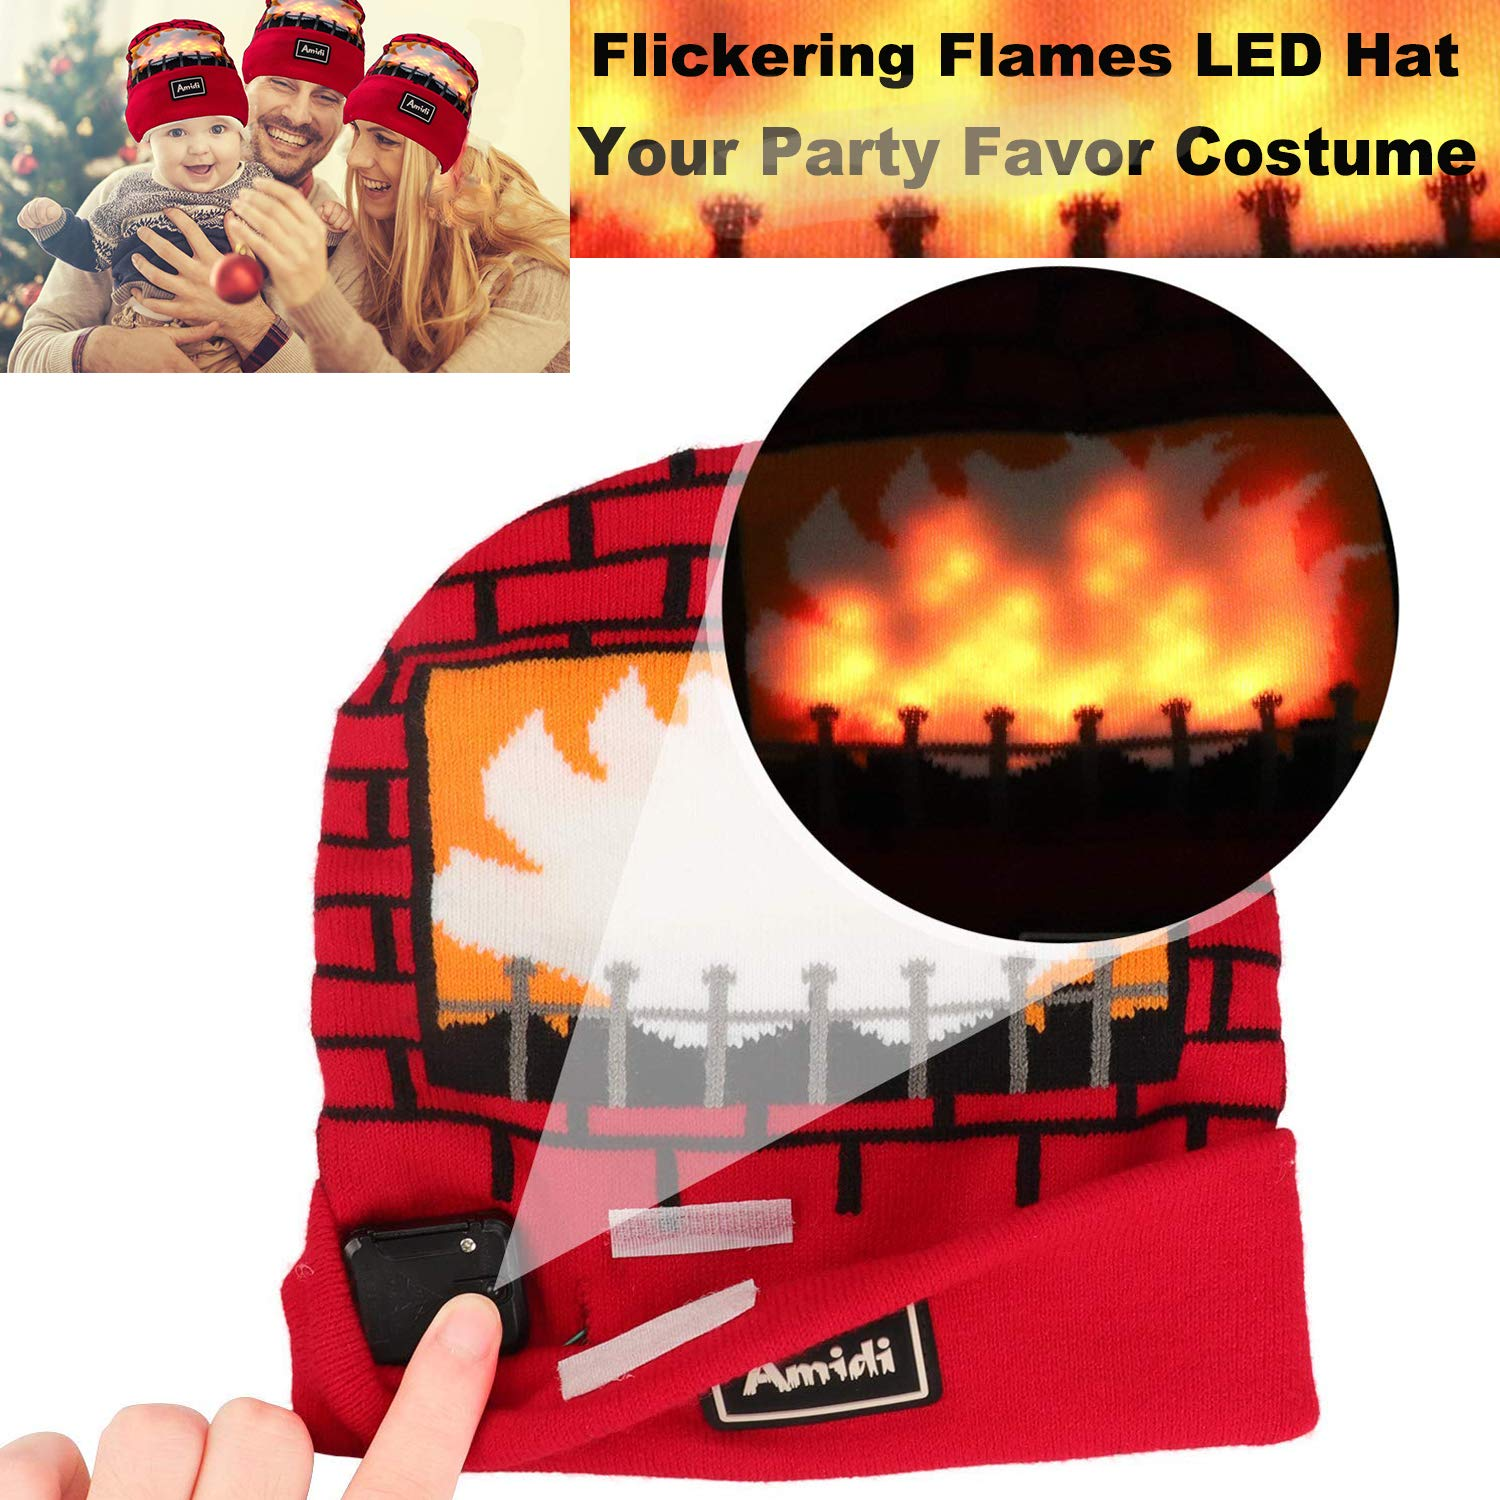 UPBASICN 2018 New Version Flickering Flames LED Light Up Hat Unisex Real  Flames Knitted Beanie Hat Kids Teens One Size Light Up Hat Costume Party  Favors ... 9b12b33c3c91